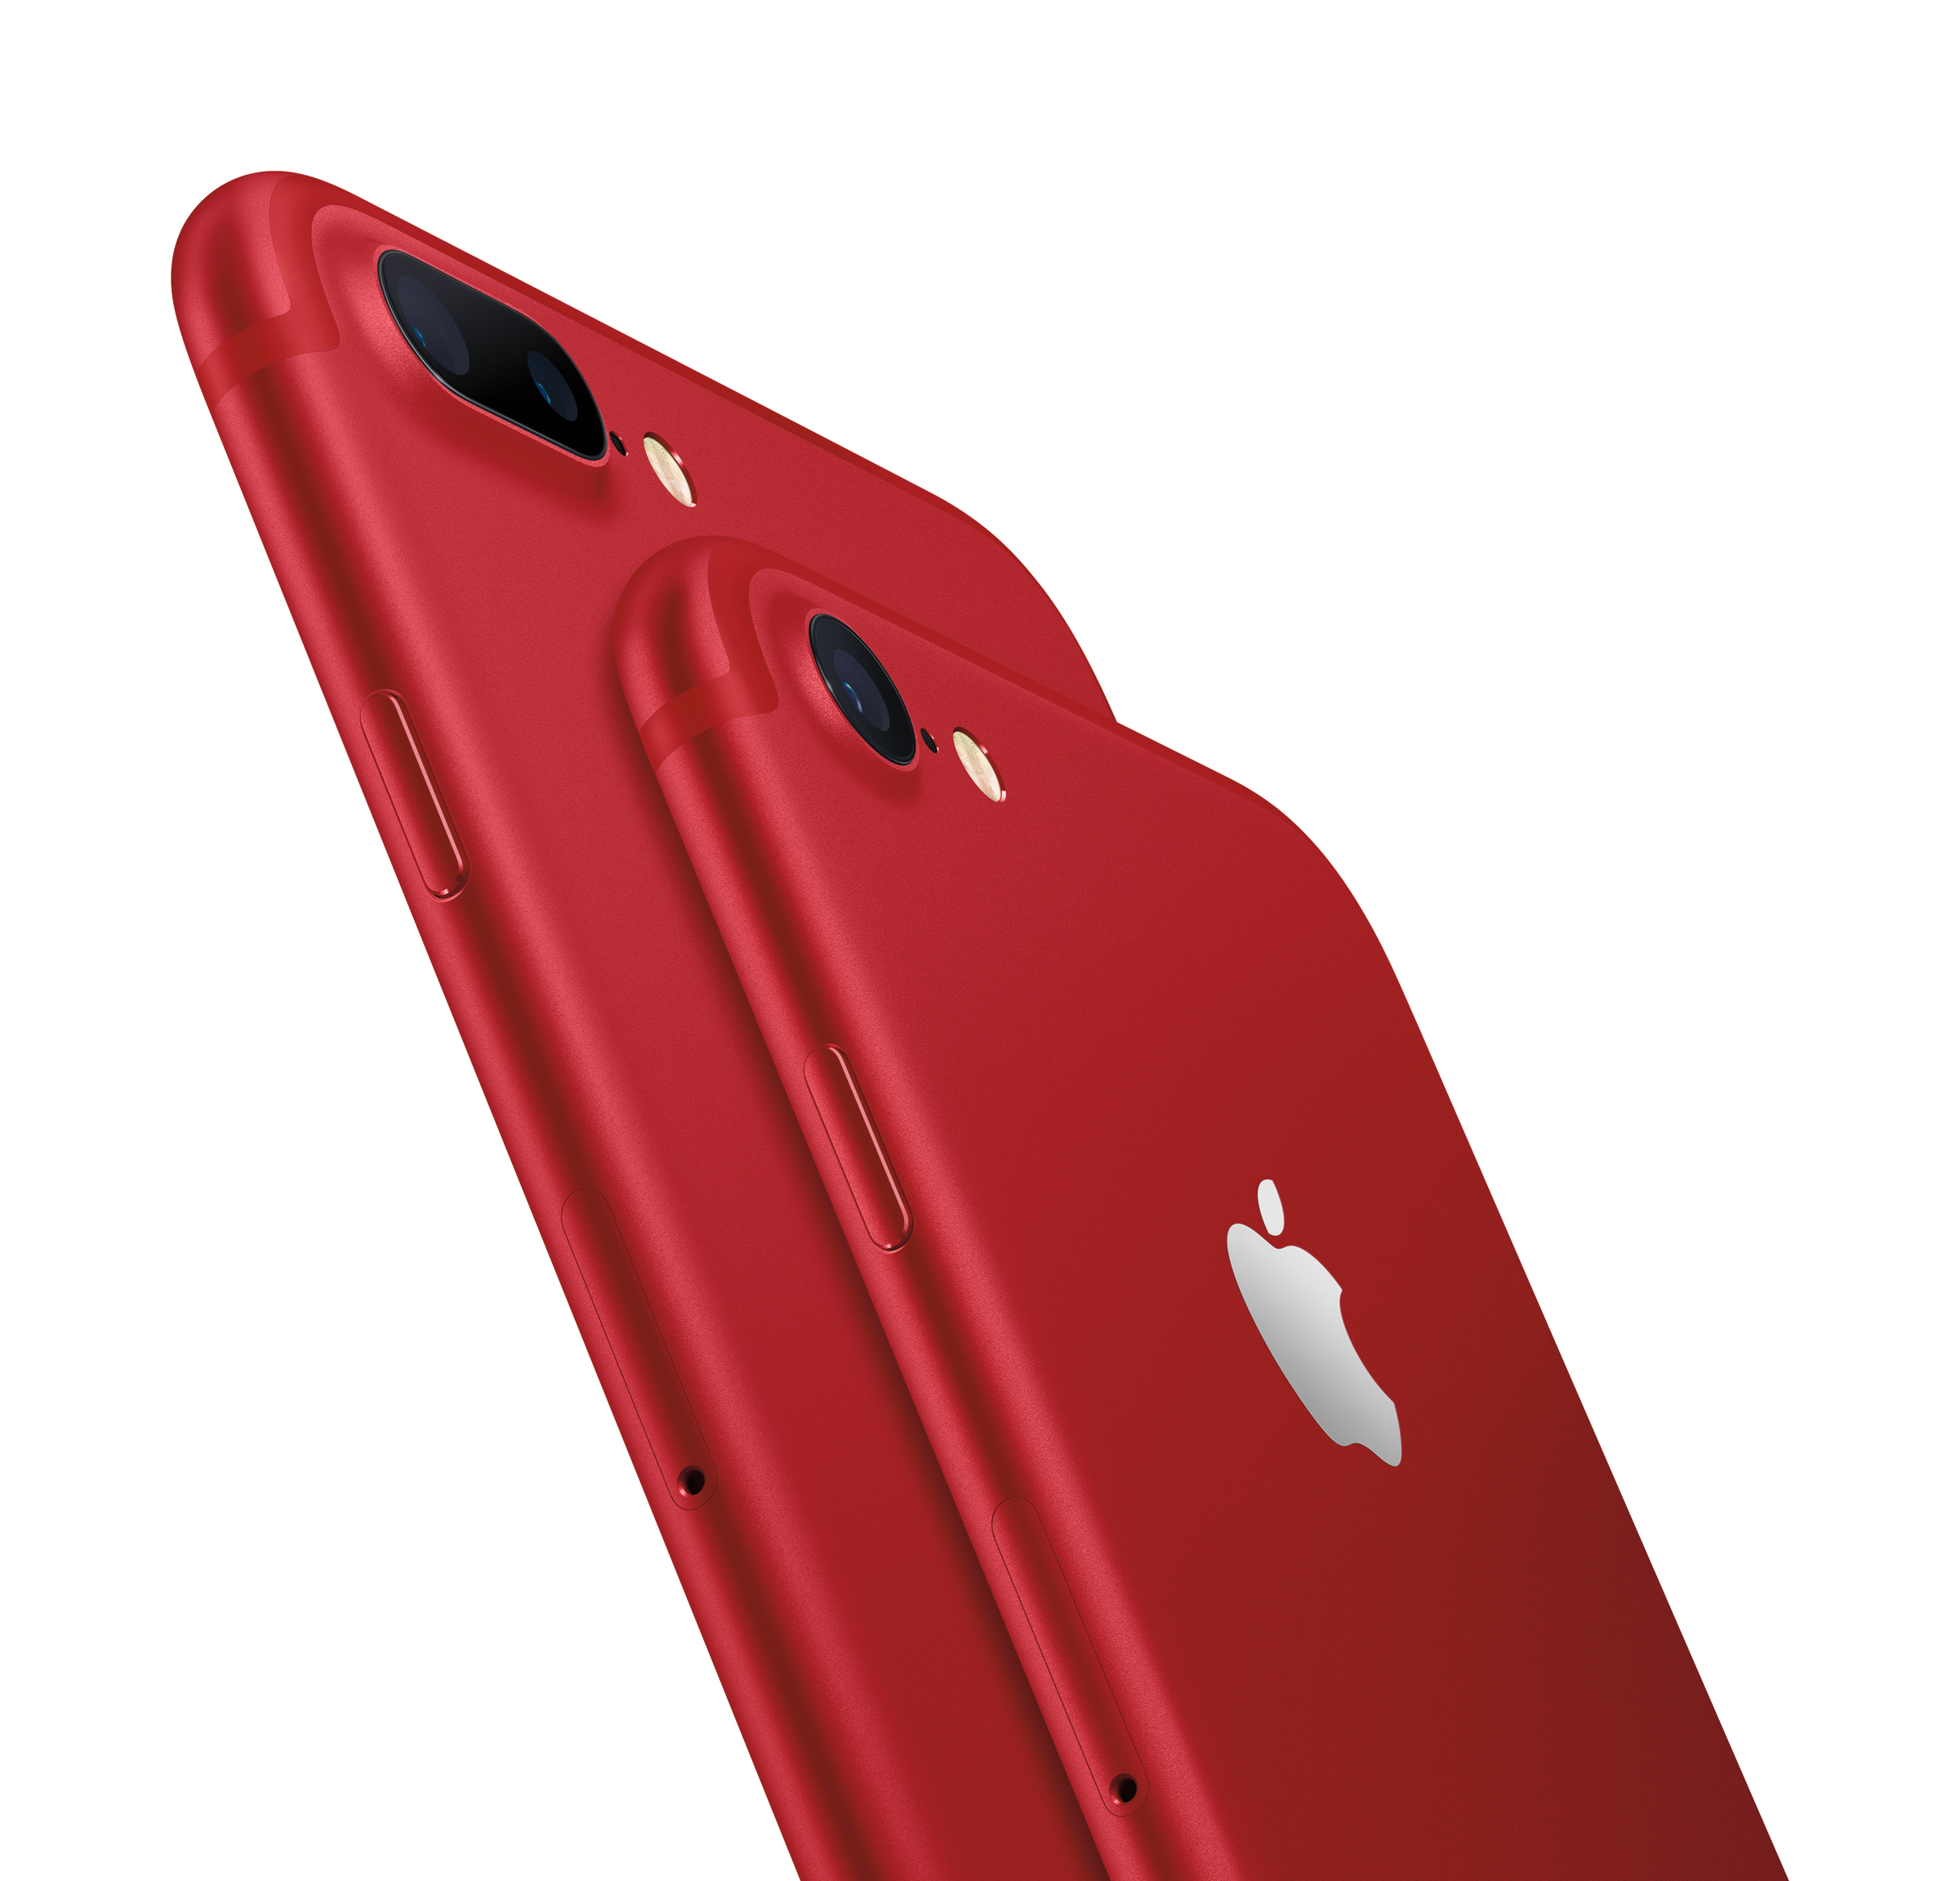 Apple introduces iphone 7 iphone 7 plus productred special apple alex kirschner 408 974 2479 alexkirschnerapple trudy muller 408 862 7426 tmullerapple stopboris Images